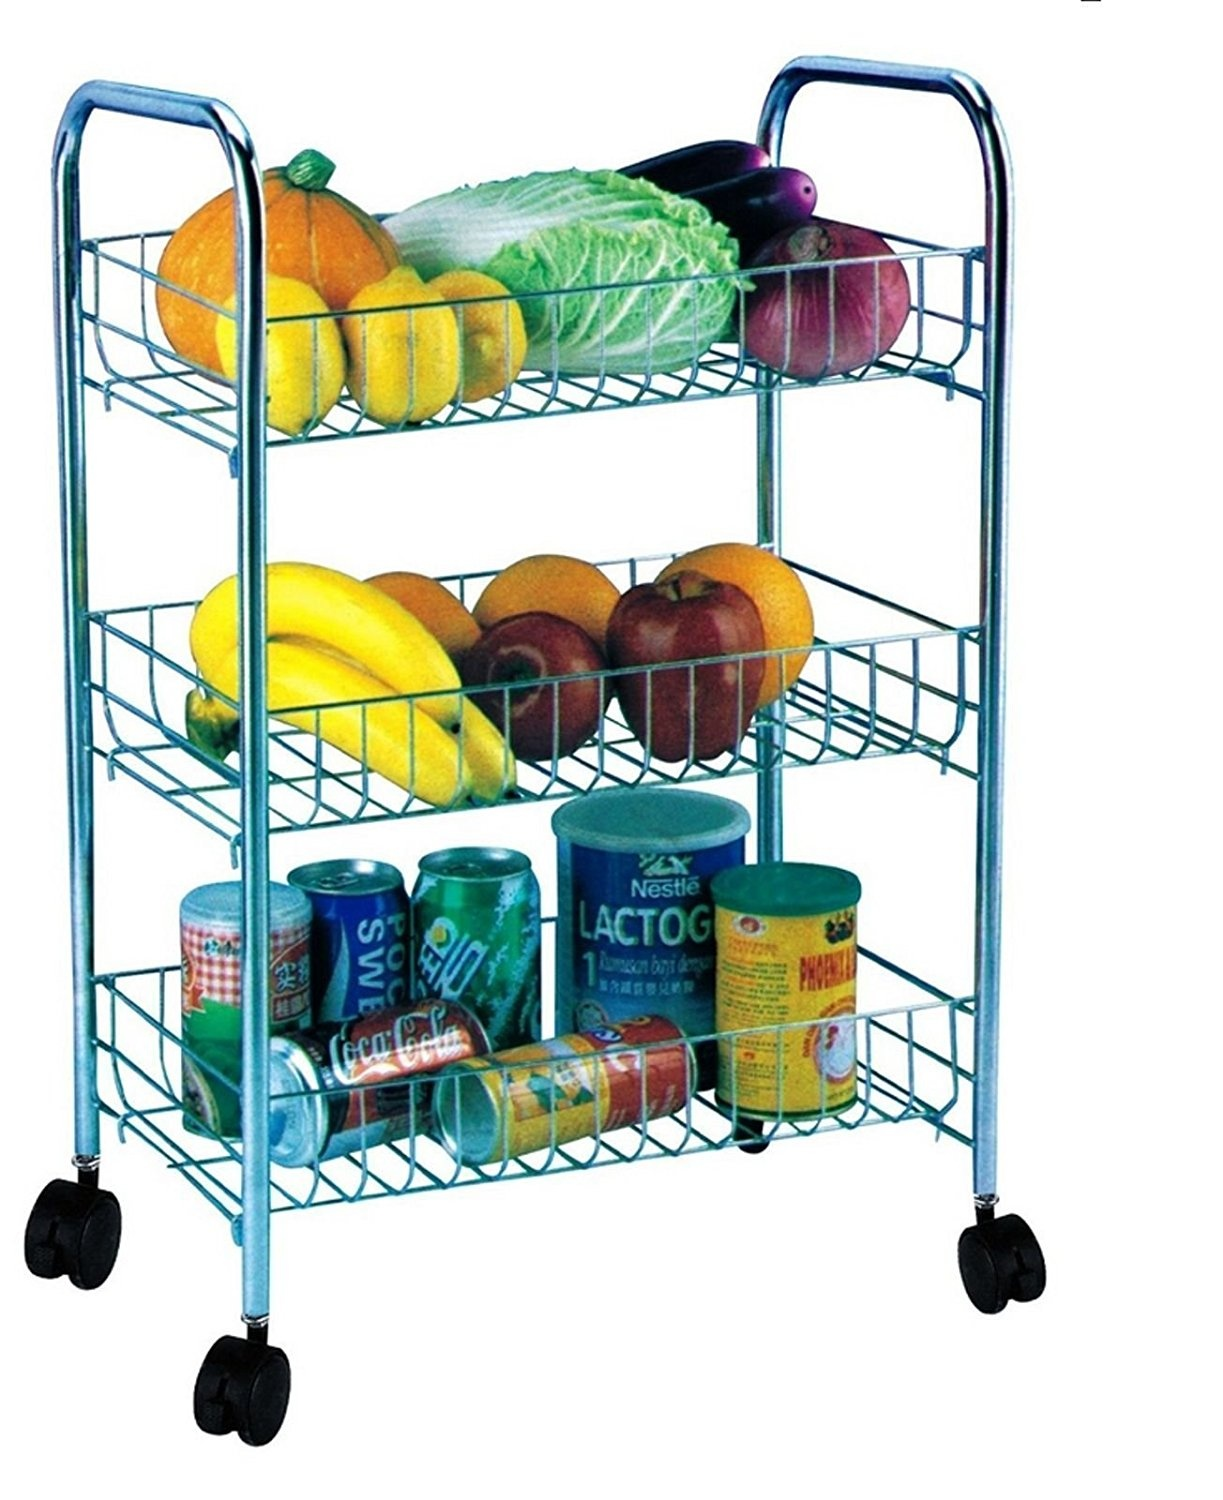 Tiered Fruit Stand Kitchen Kitchen: Buy Online from Fishpond.co.nz